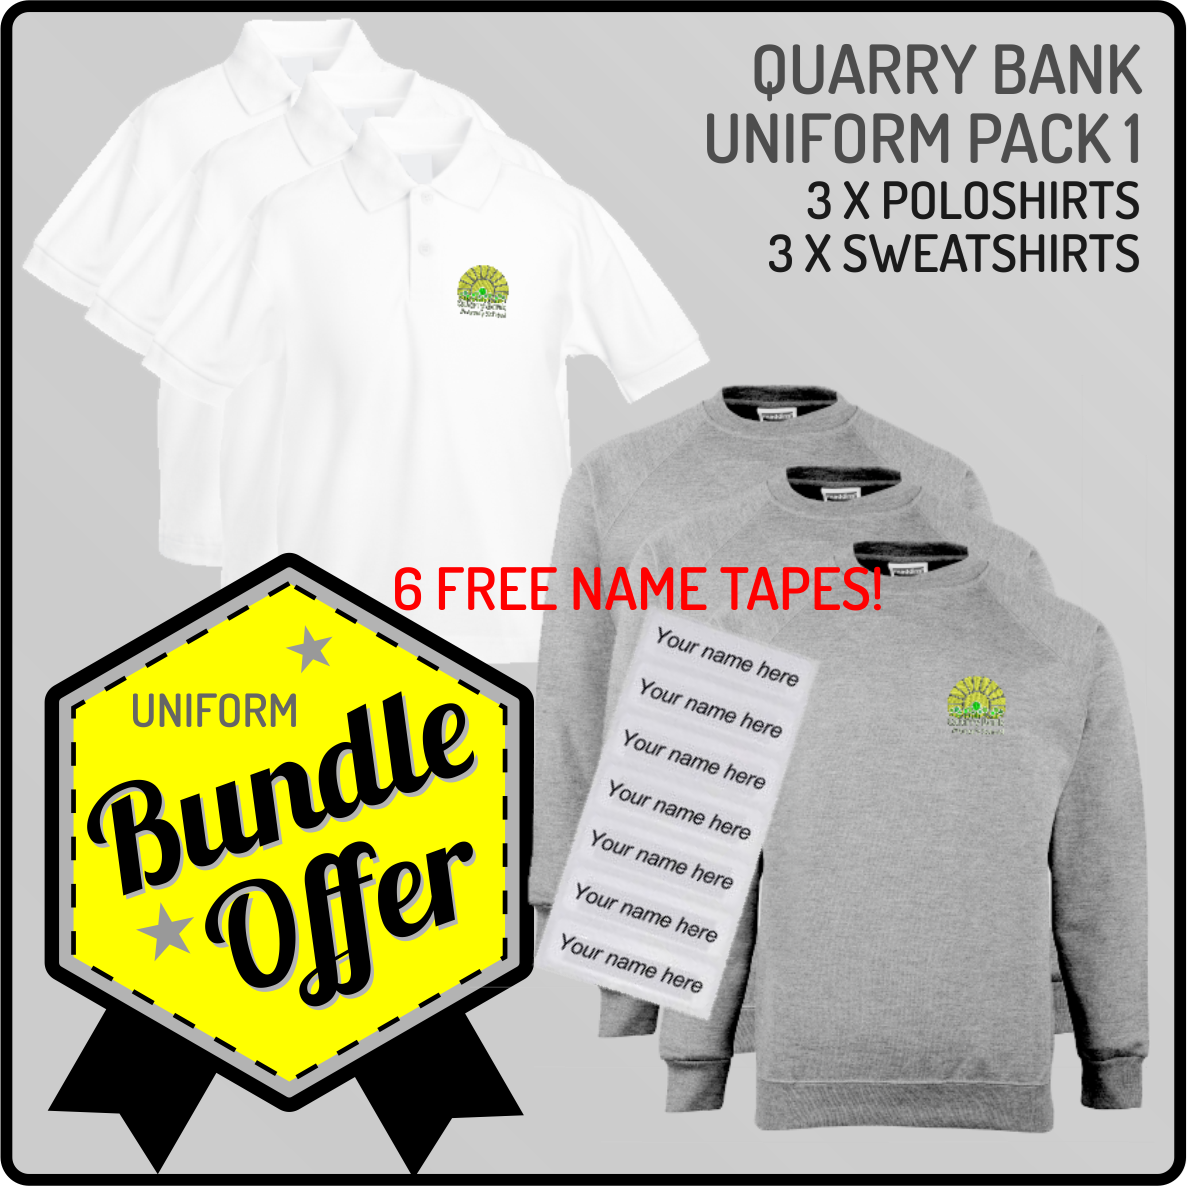 Bundle offer of 3 Crew Neck Sweatshirts & 3 Poloshirts - INCLUDES FREE NAME TAPES